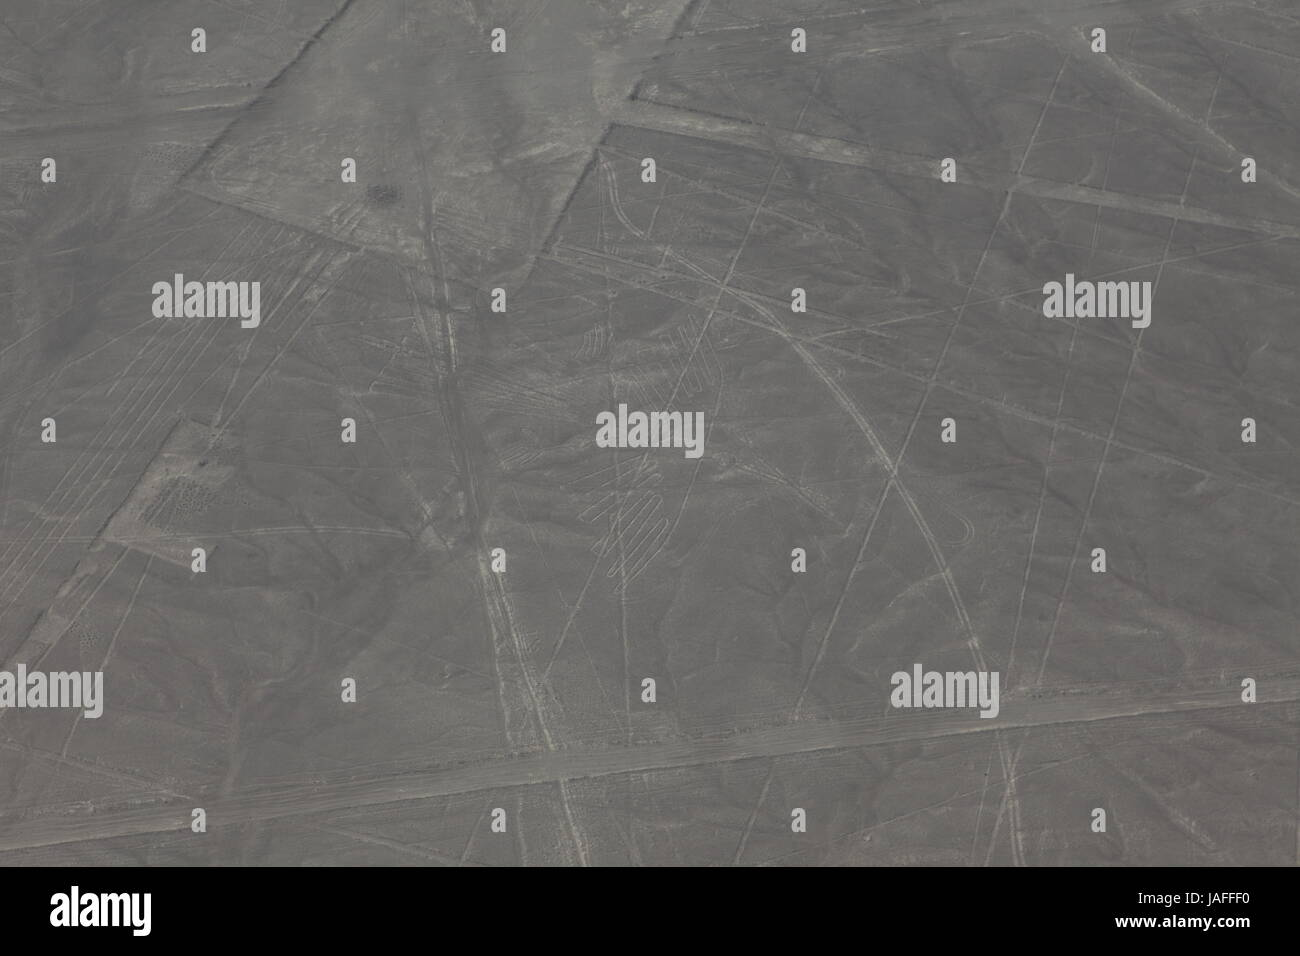 the nasca lines in peru Stock Photo